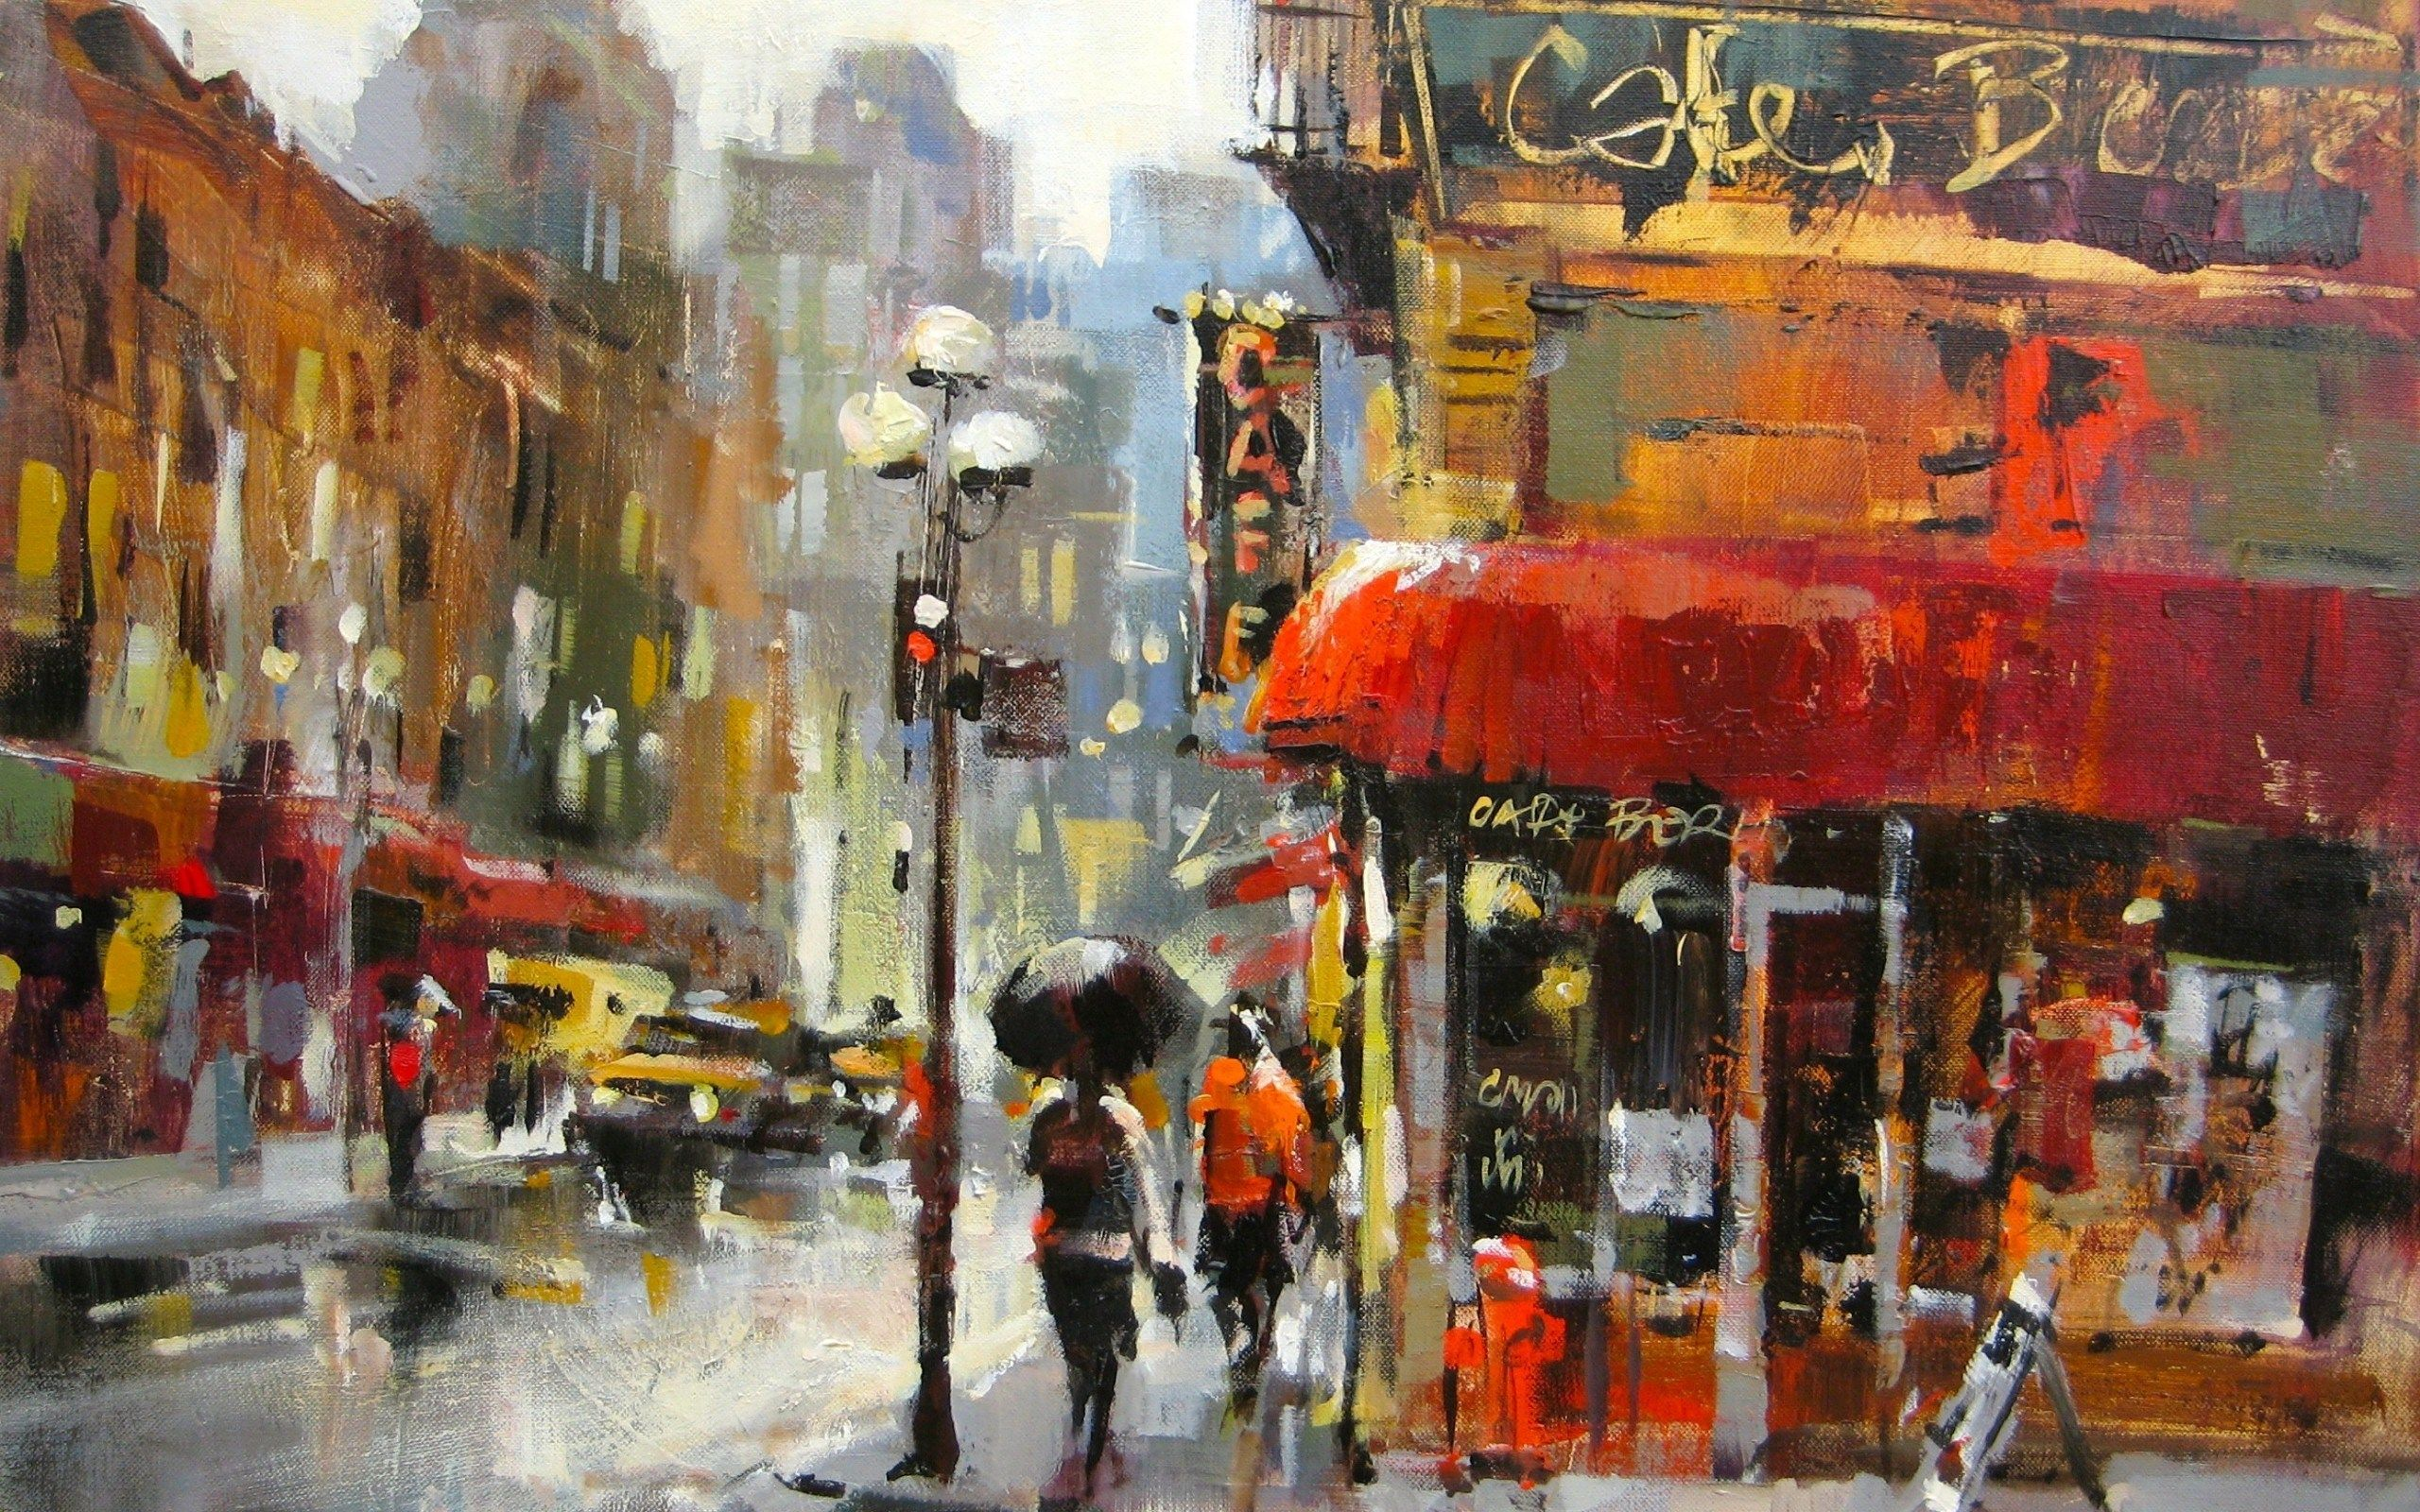 City Street Rainy Day Oil Painting HD Wallpaper